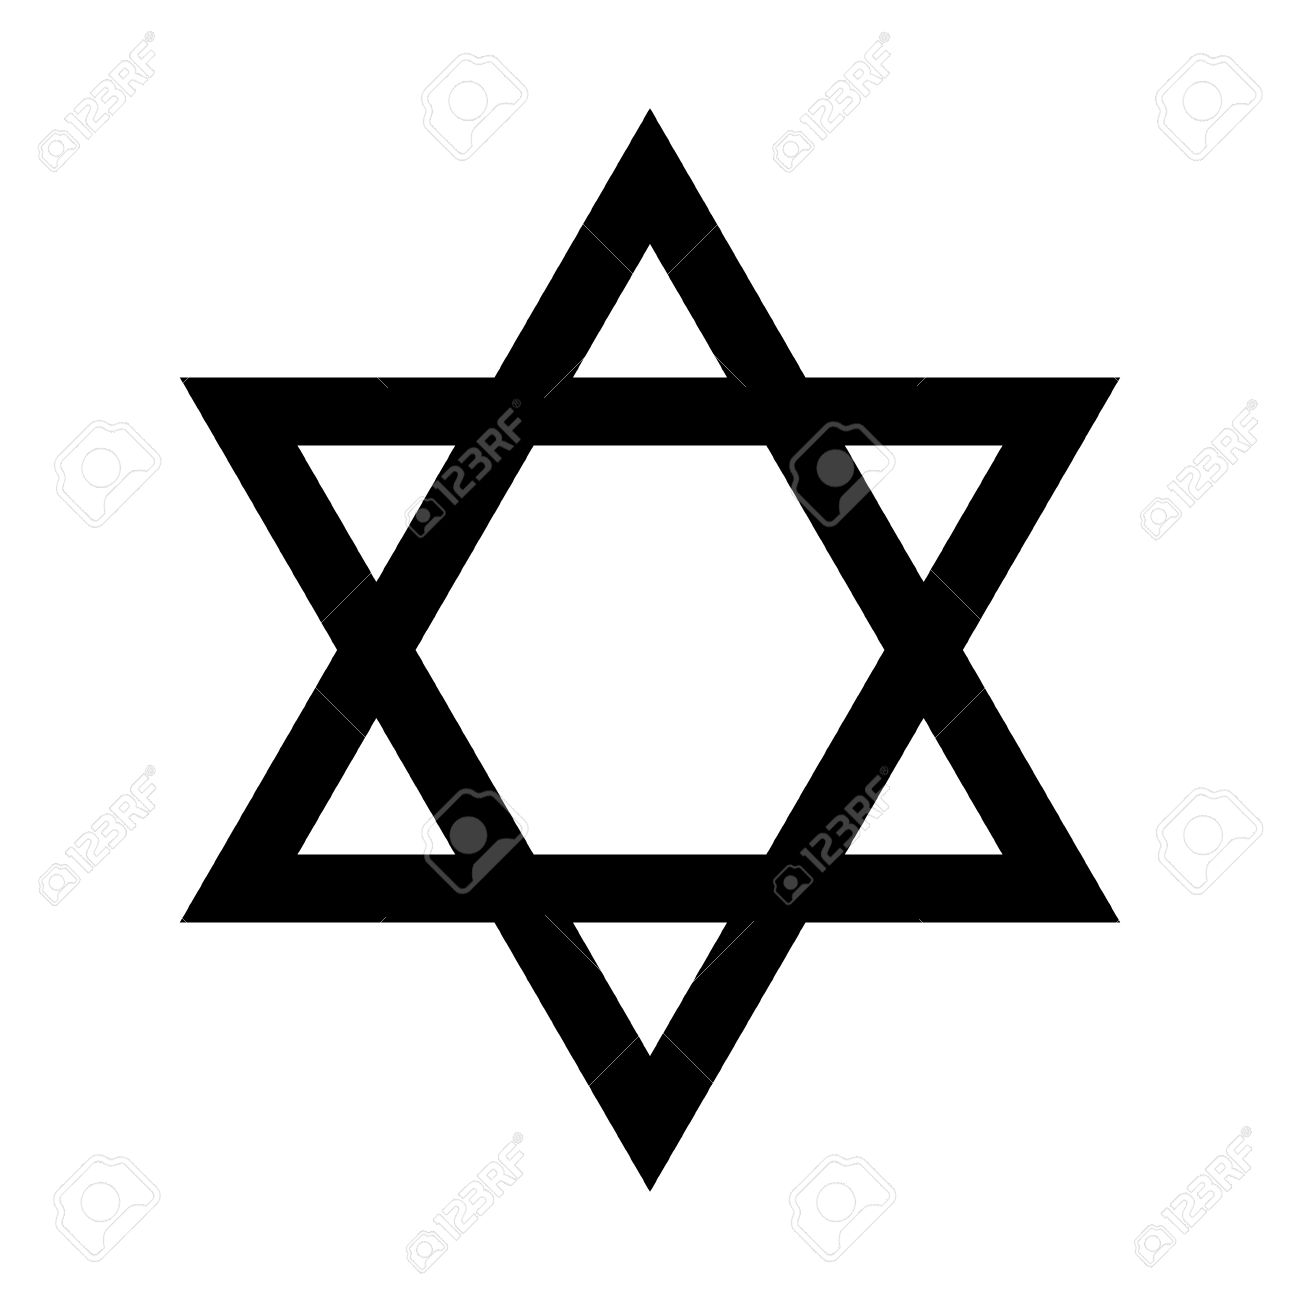 Star of david symbol of judaism flat icon for apps and websites star of david symbol of judaism flat icon for apps and websites banque d biocorpaavc Choice Image